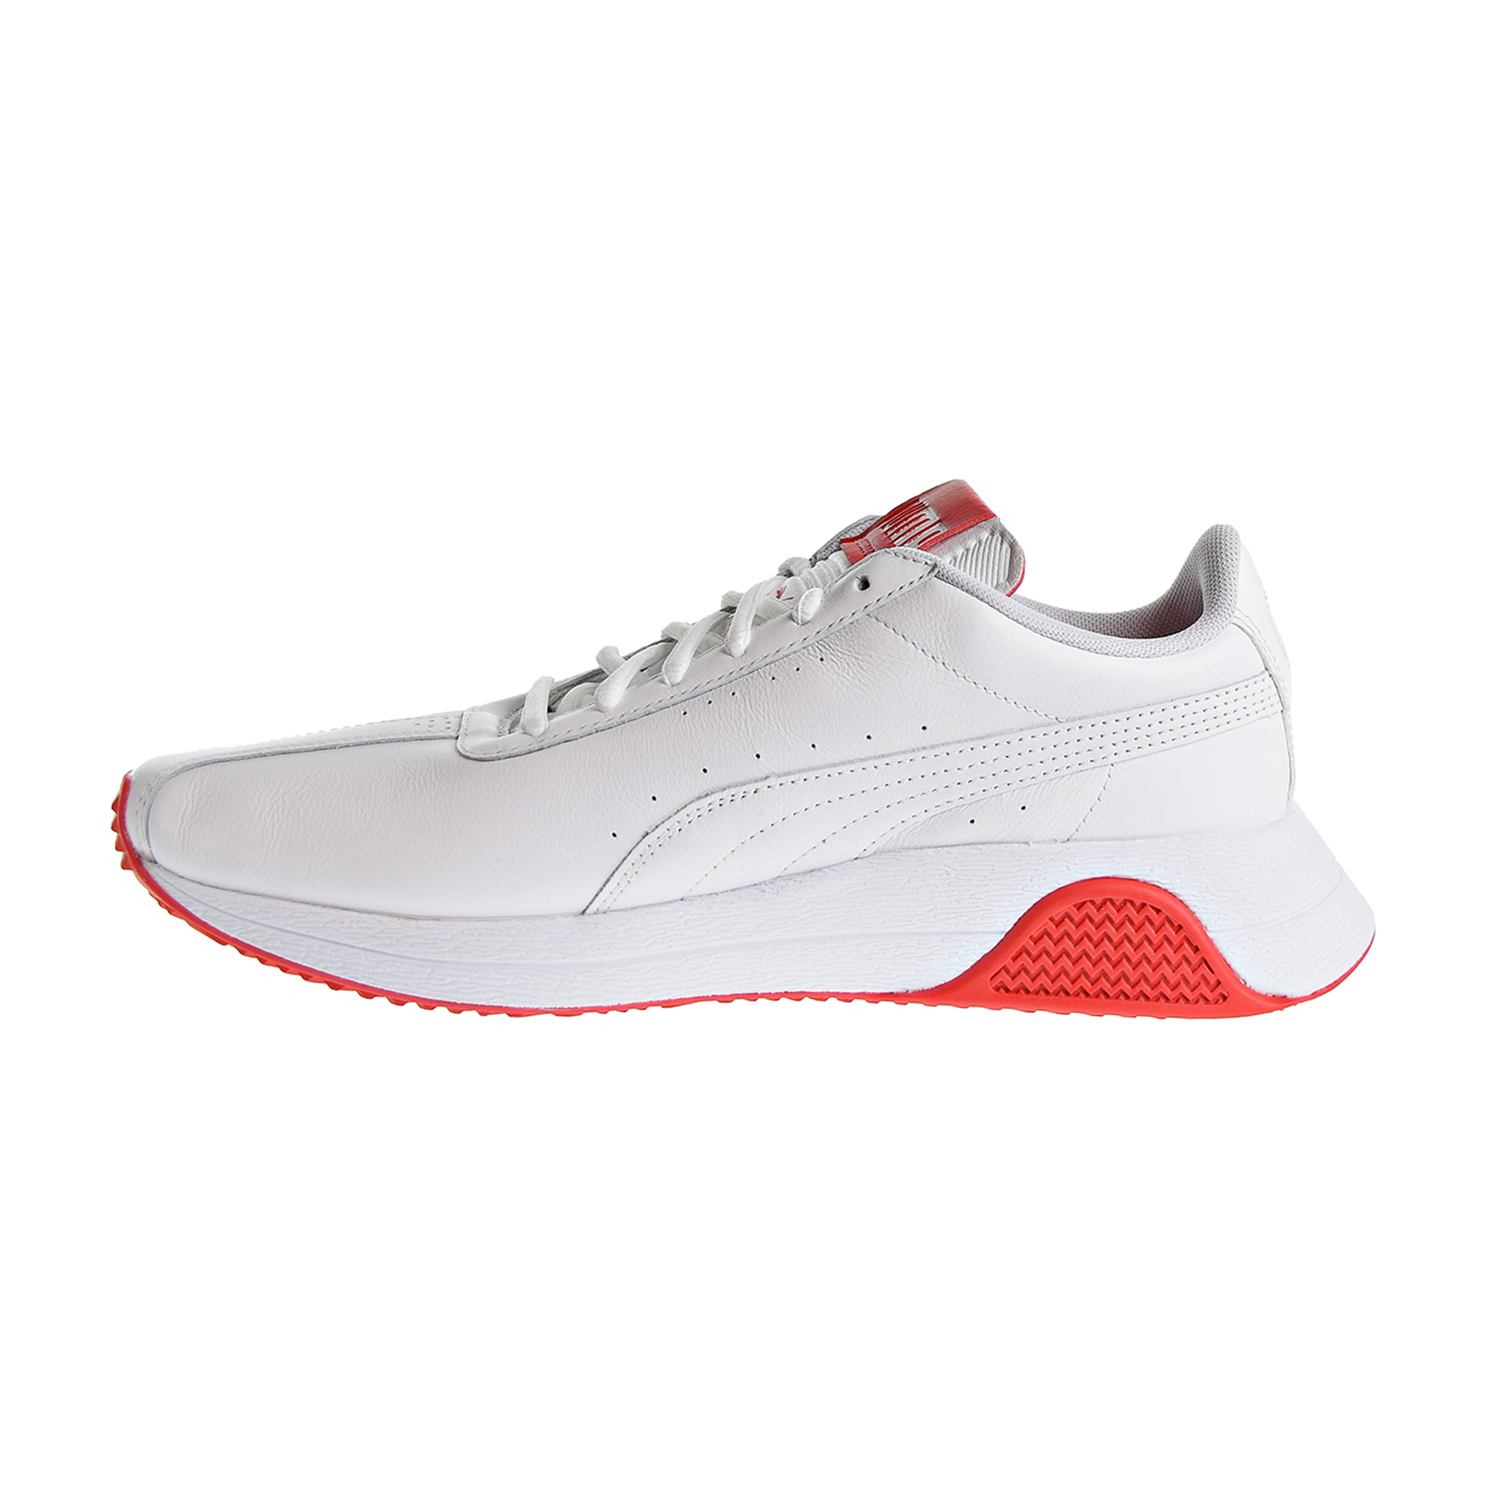 eab3ef33e2f428 Details about Puma Turin 0 Leather Men s Shoes Puma White High Risk Red  367858-01